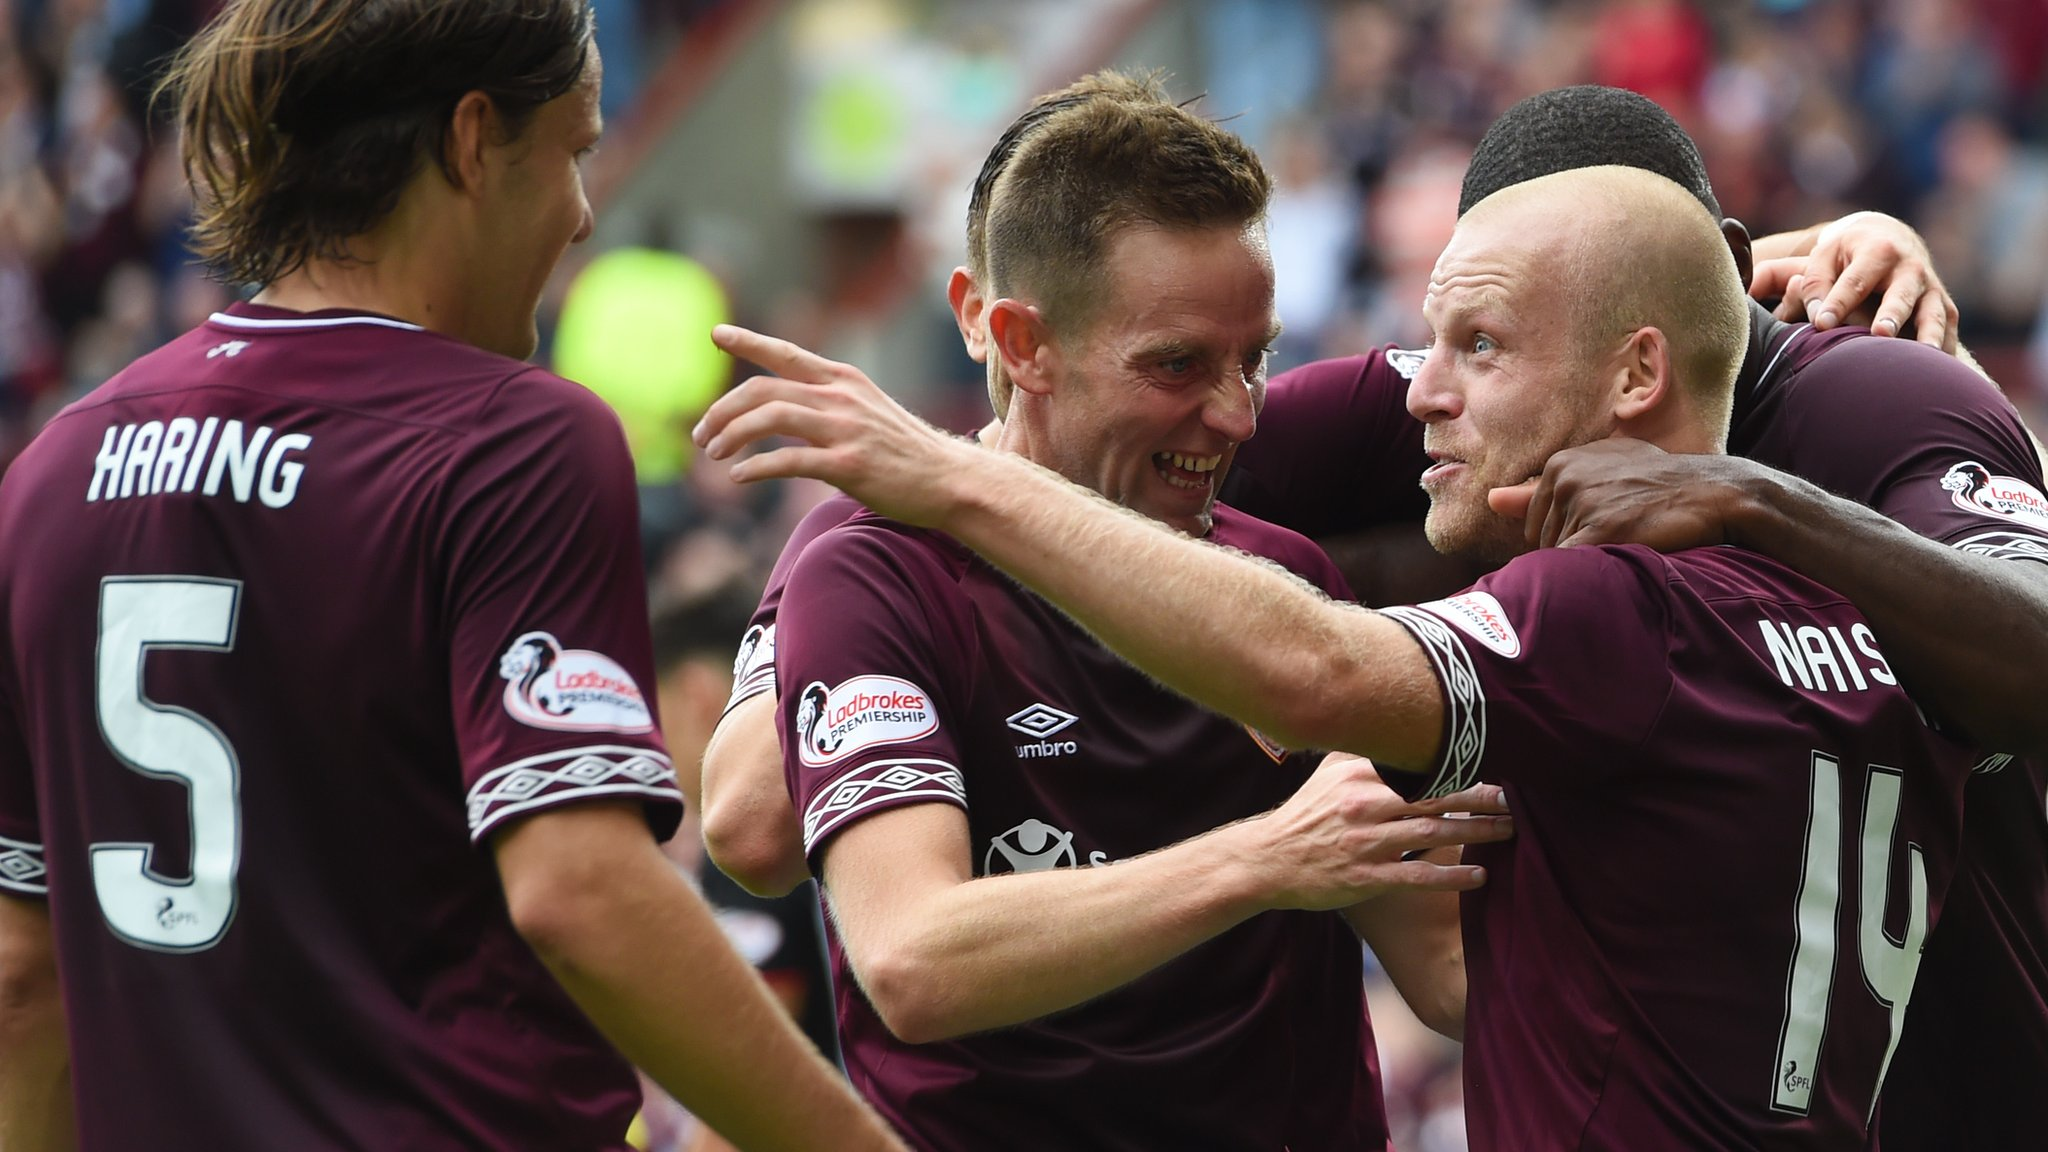 Hearts: Scoring, signings & the George Burley comparison